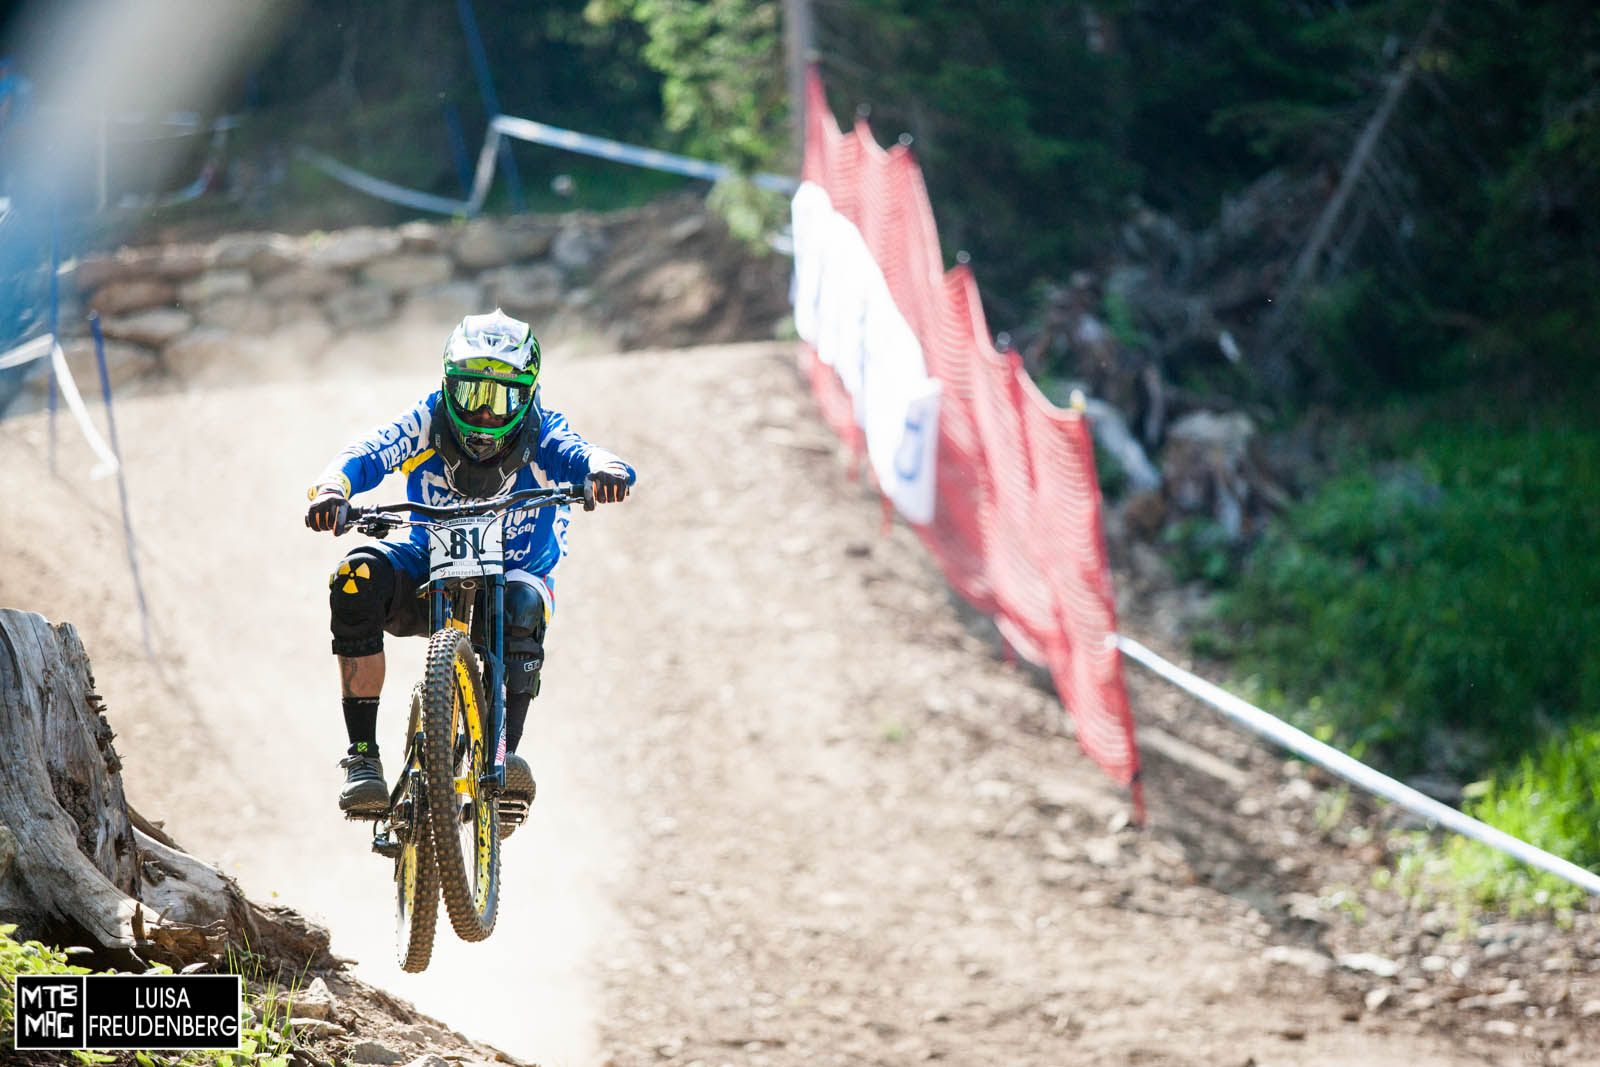 Classic Sam Hill.  Always carrying incredible form.